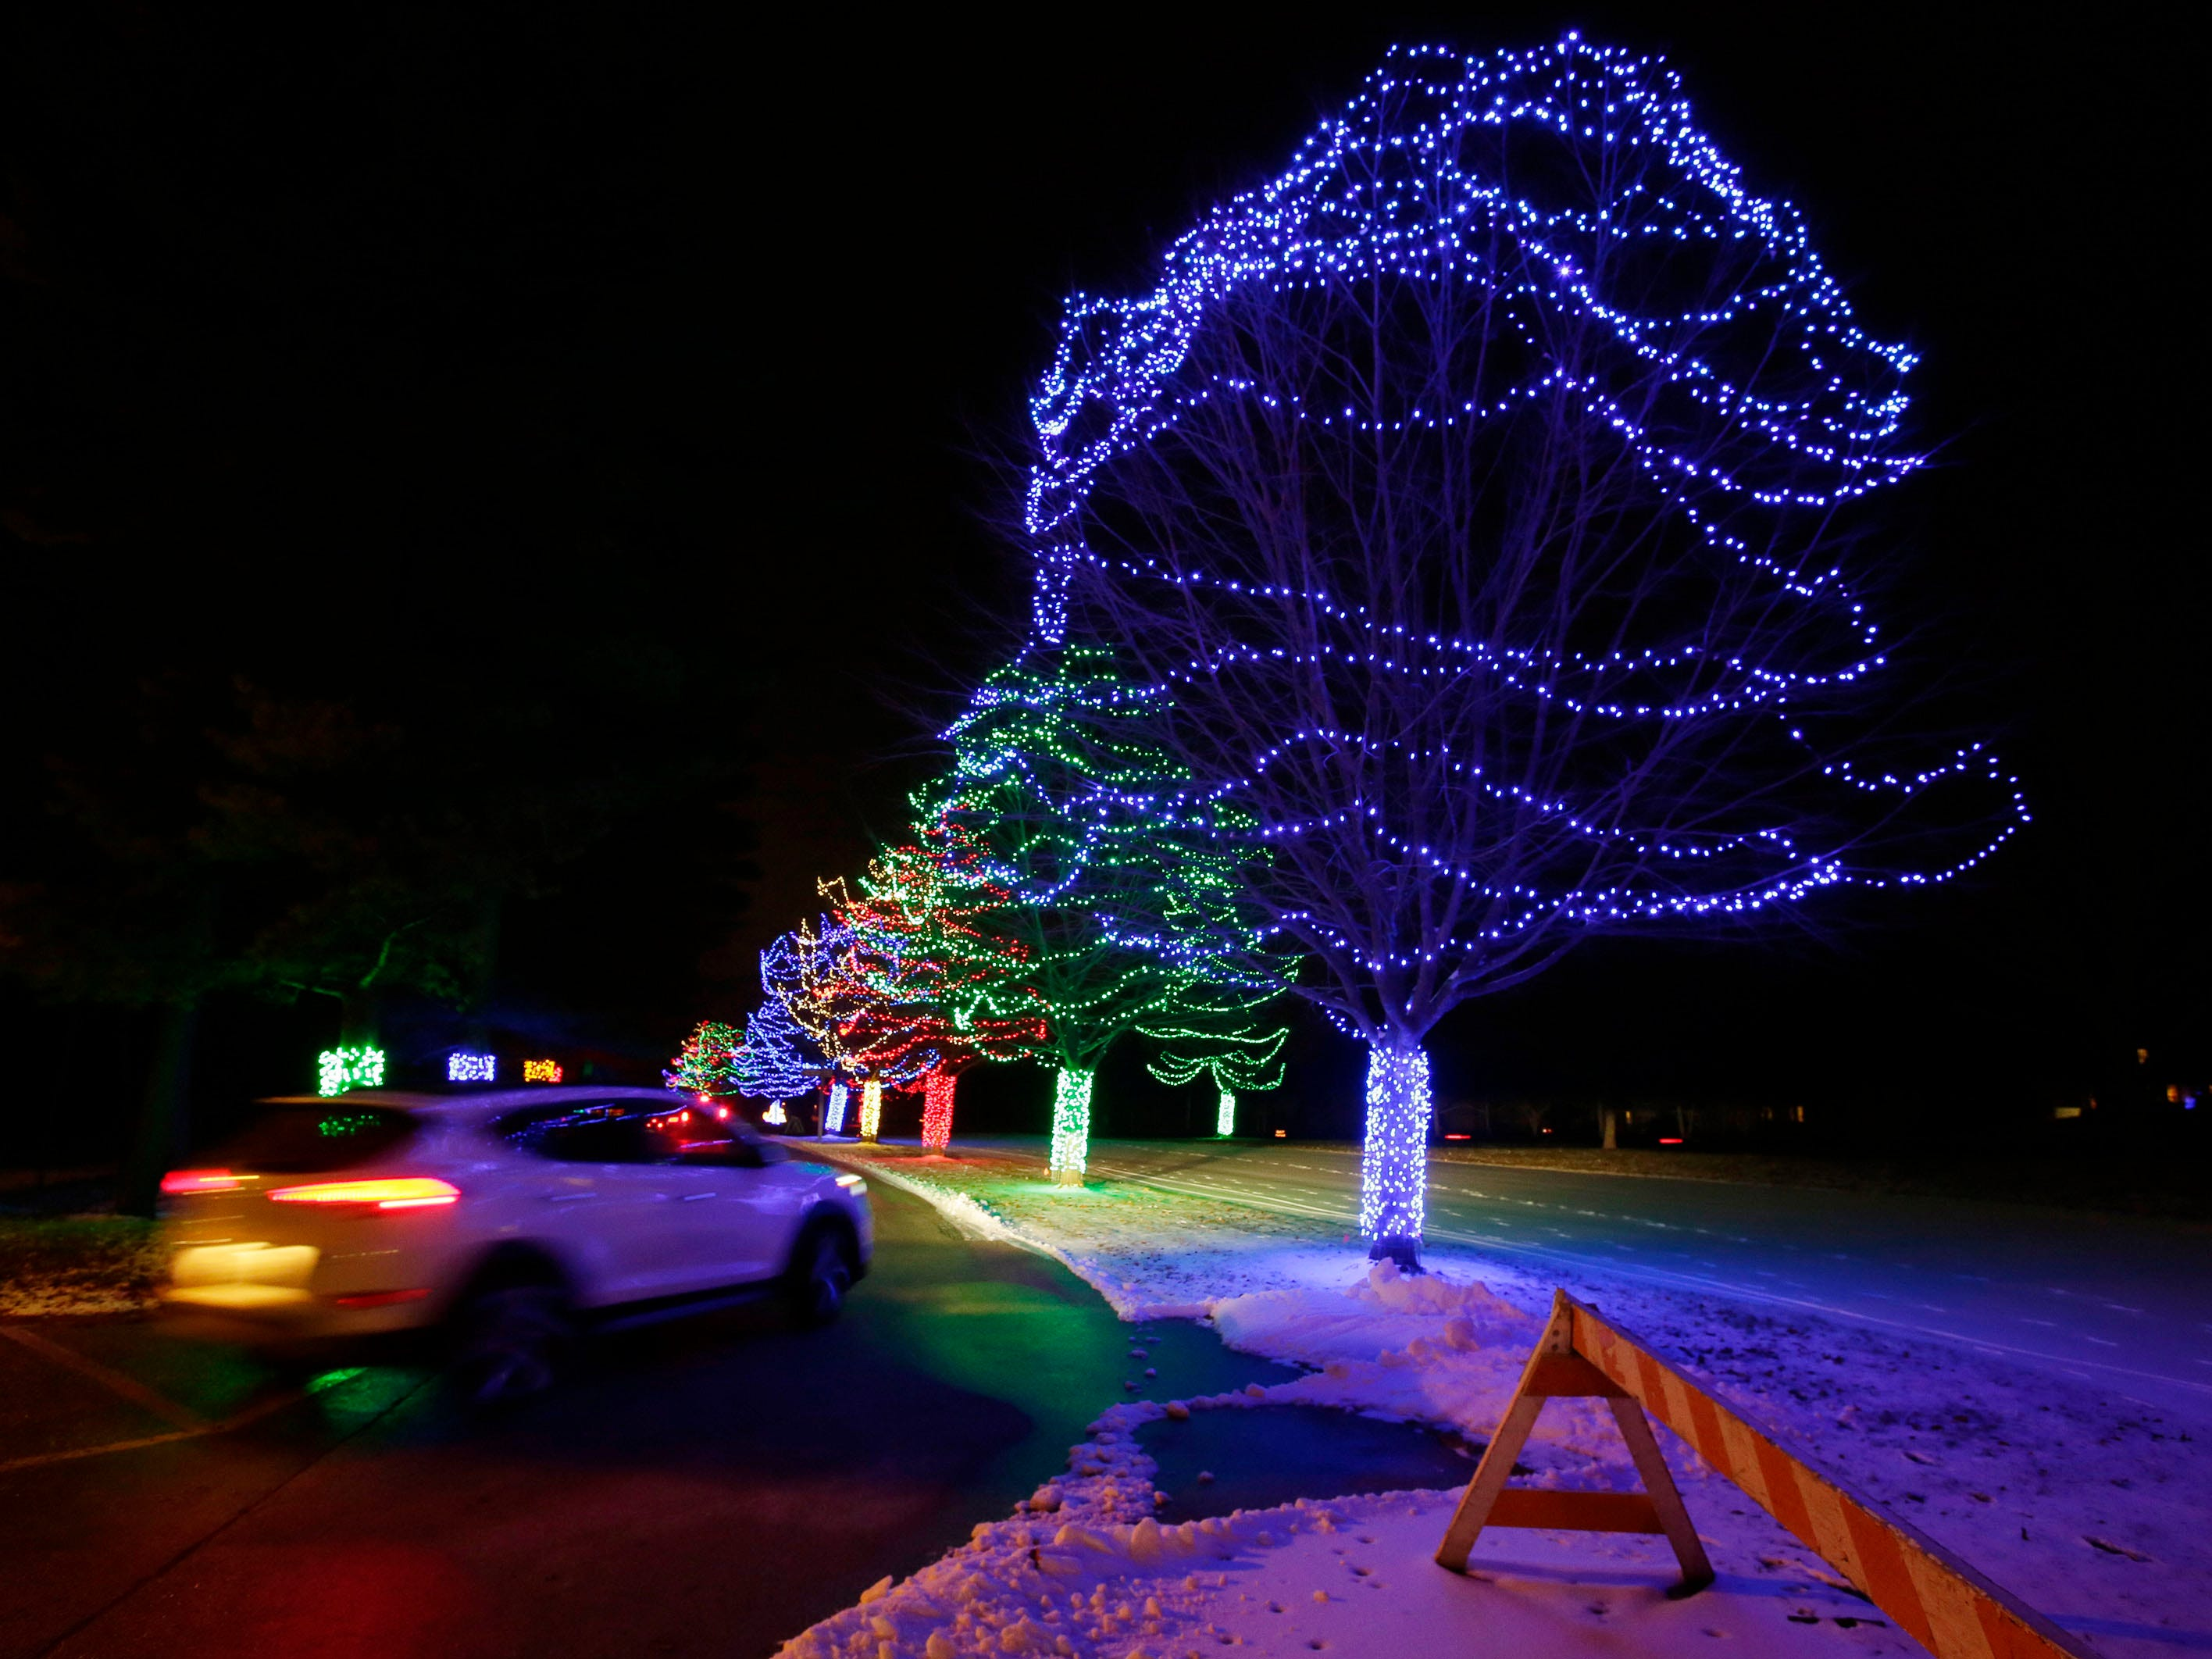 A motorist drives past trees which are brilliant in color at Making Spirits Bright at Evergreen Park, Friday, November 30, 2018, in Sheboygan, Wis.